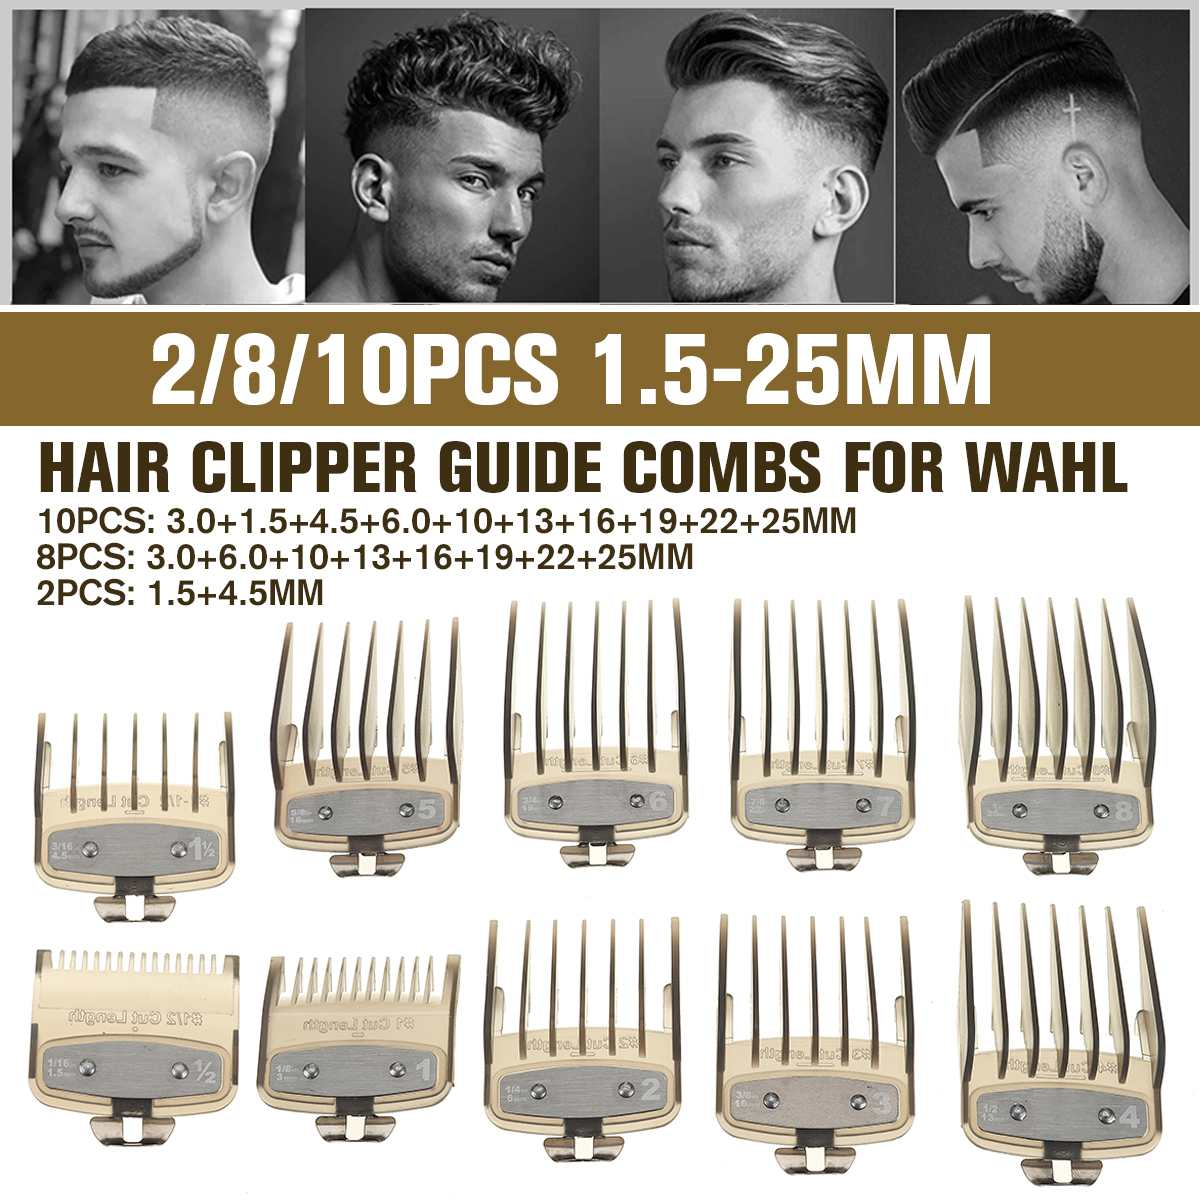 100/100/100Pcs Hair Clipper Cutting Guide Comb Guards 10.10-10010mm Limit Comb Tools  Kit for 10x3100mm Cutting Head Hair Clipper for WAHL